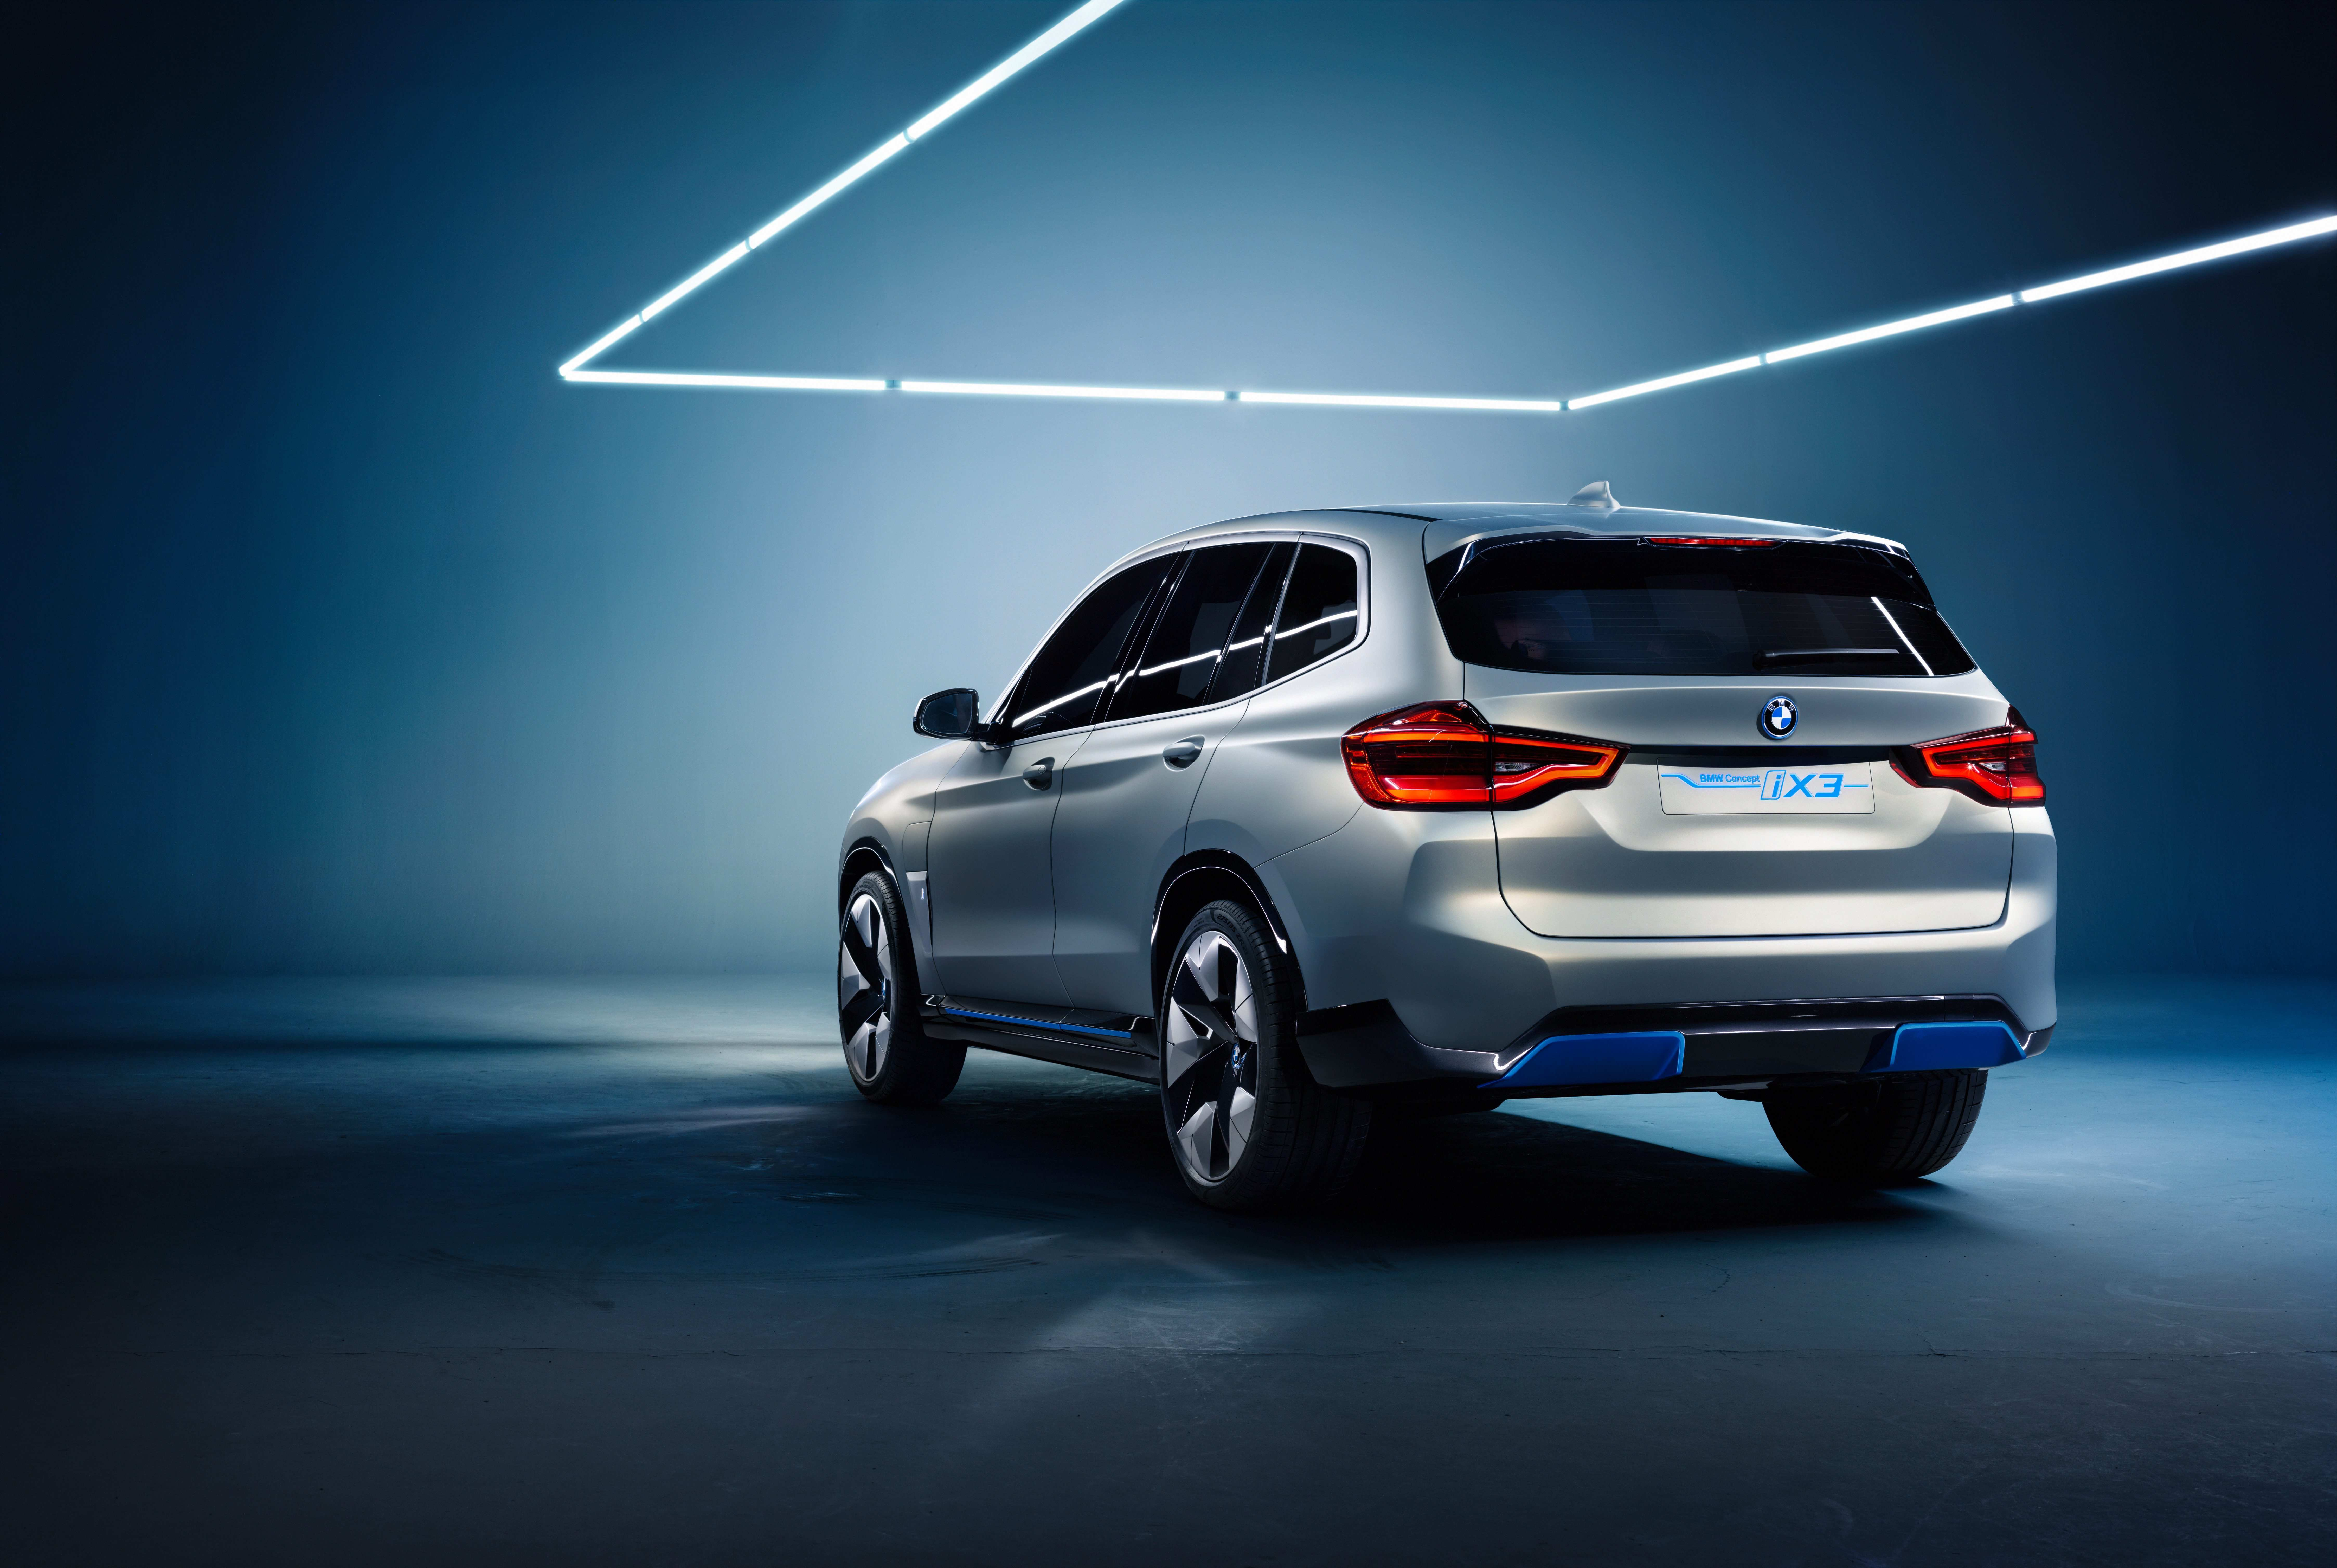 73 Gallery of 2020 Bmw X3 Electric Speed Test by 2020 Bmw X3 Electric